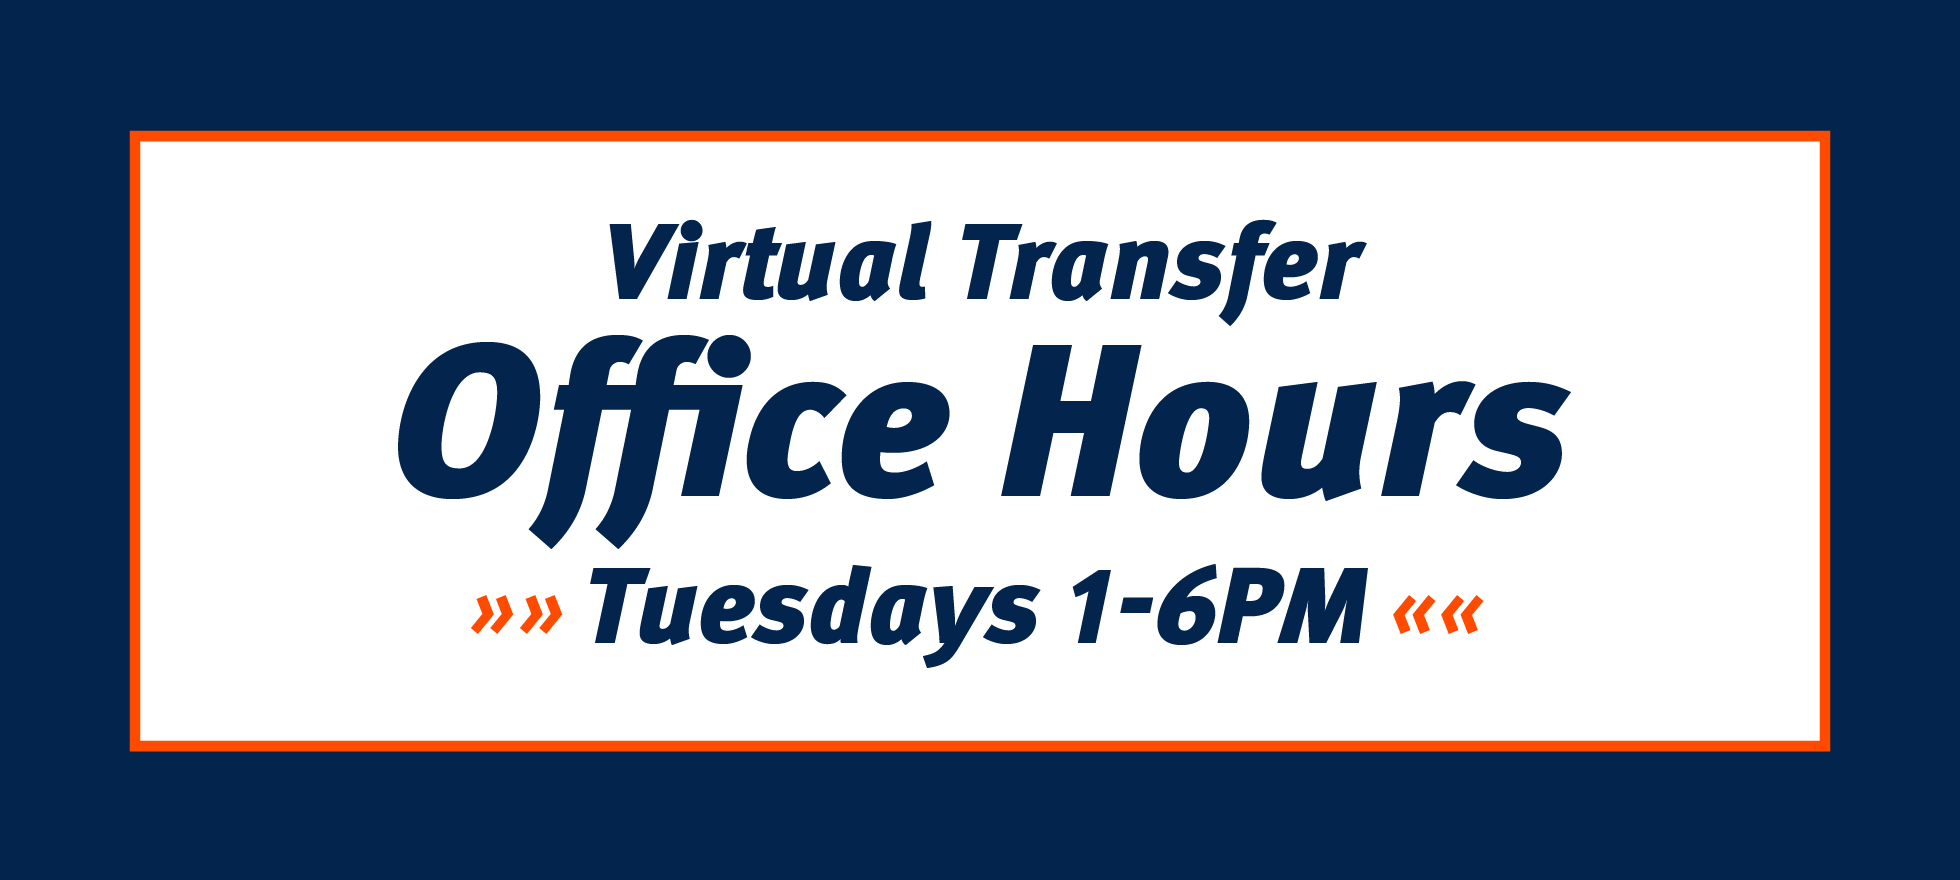 Virtual Transfer Office Hours Tuesdays 1-6pm